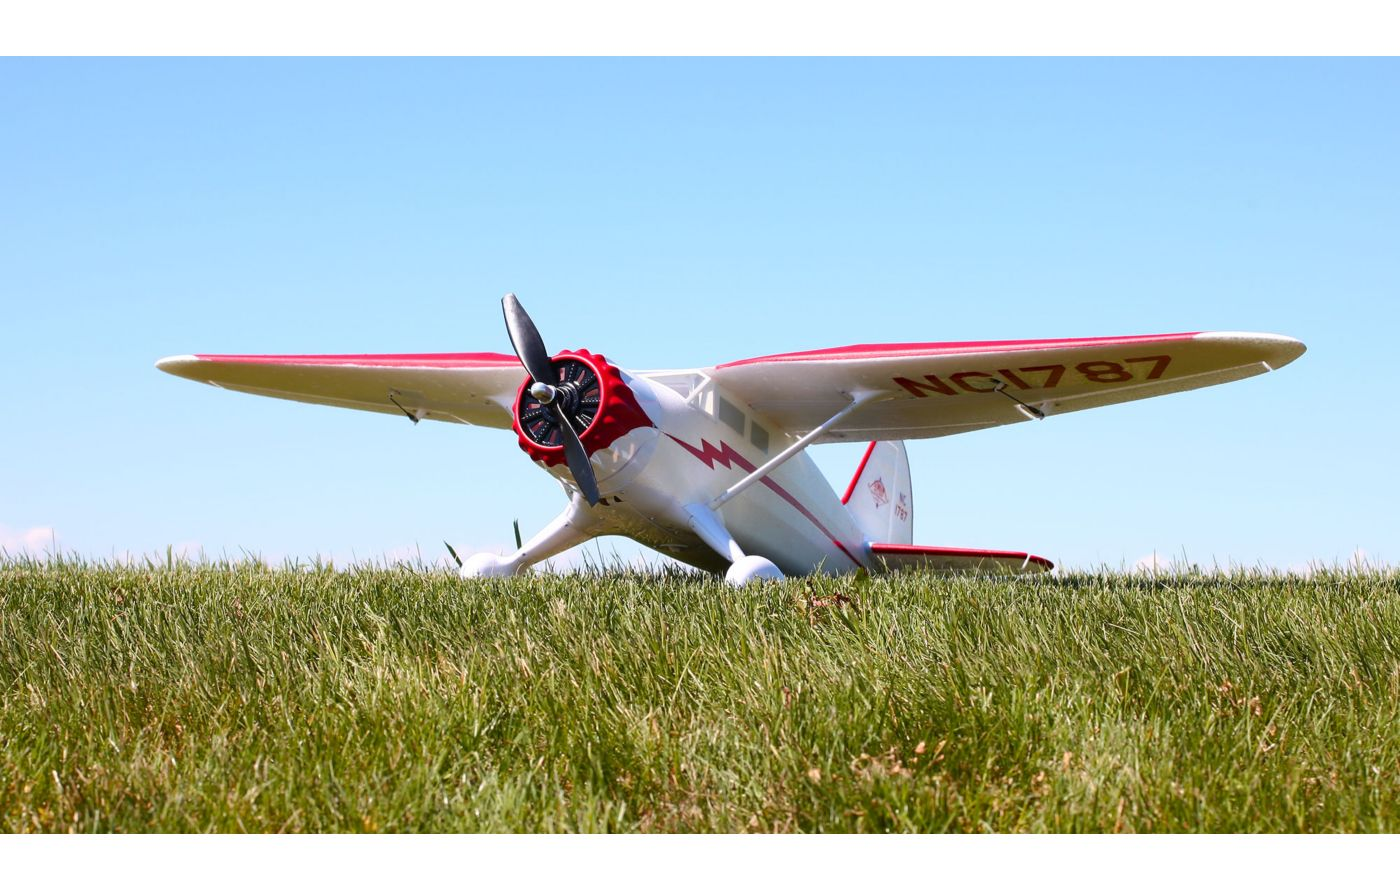 Image for Stinson SR-10 1.3m PNP from Force RC